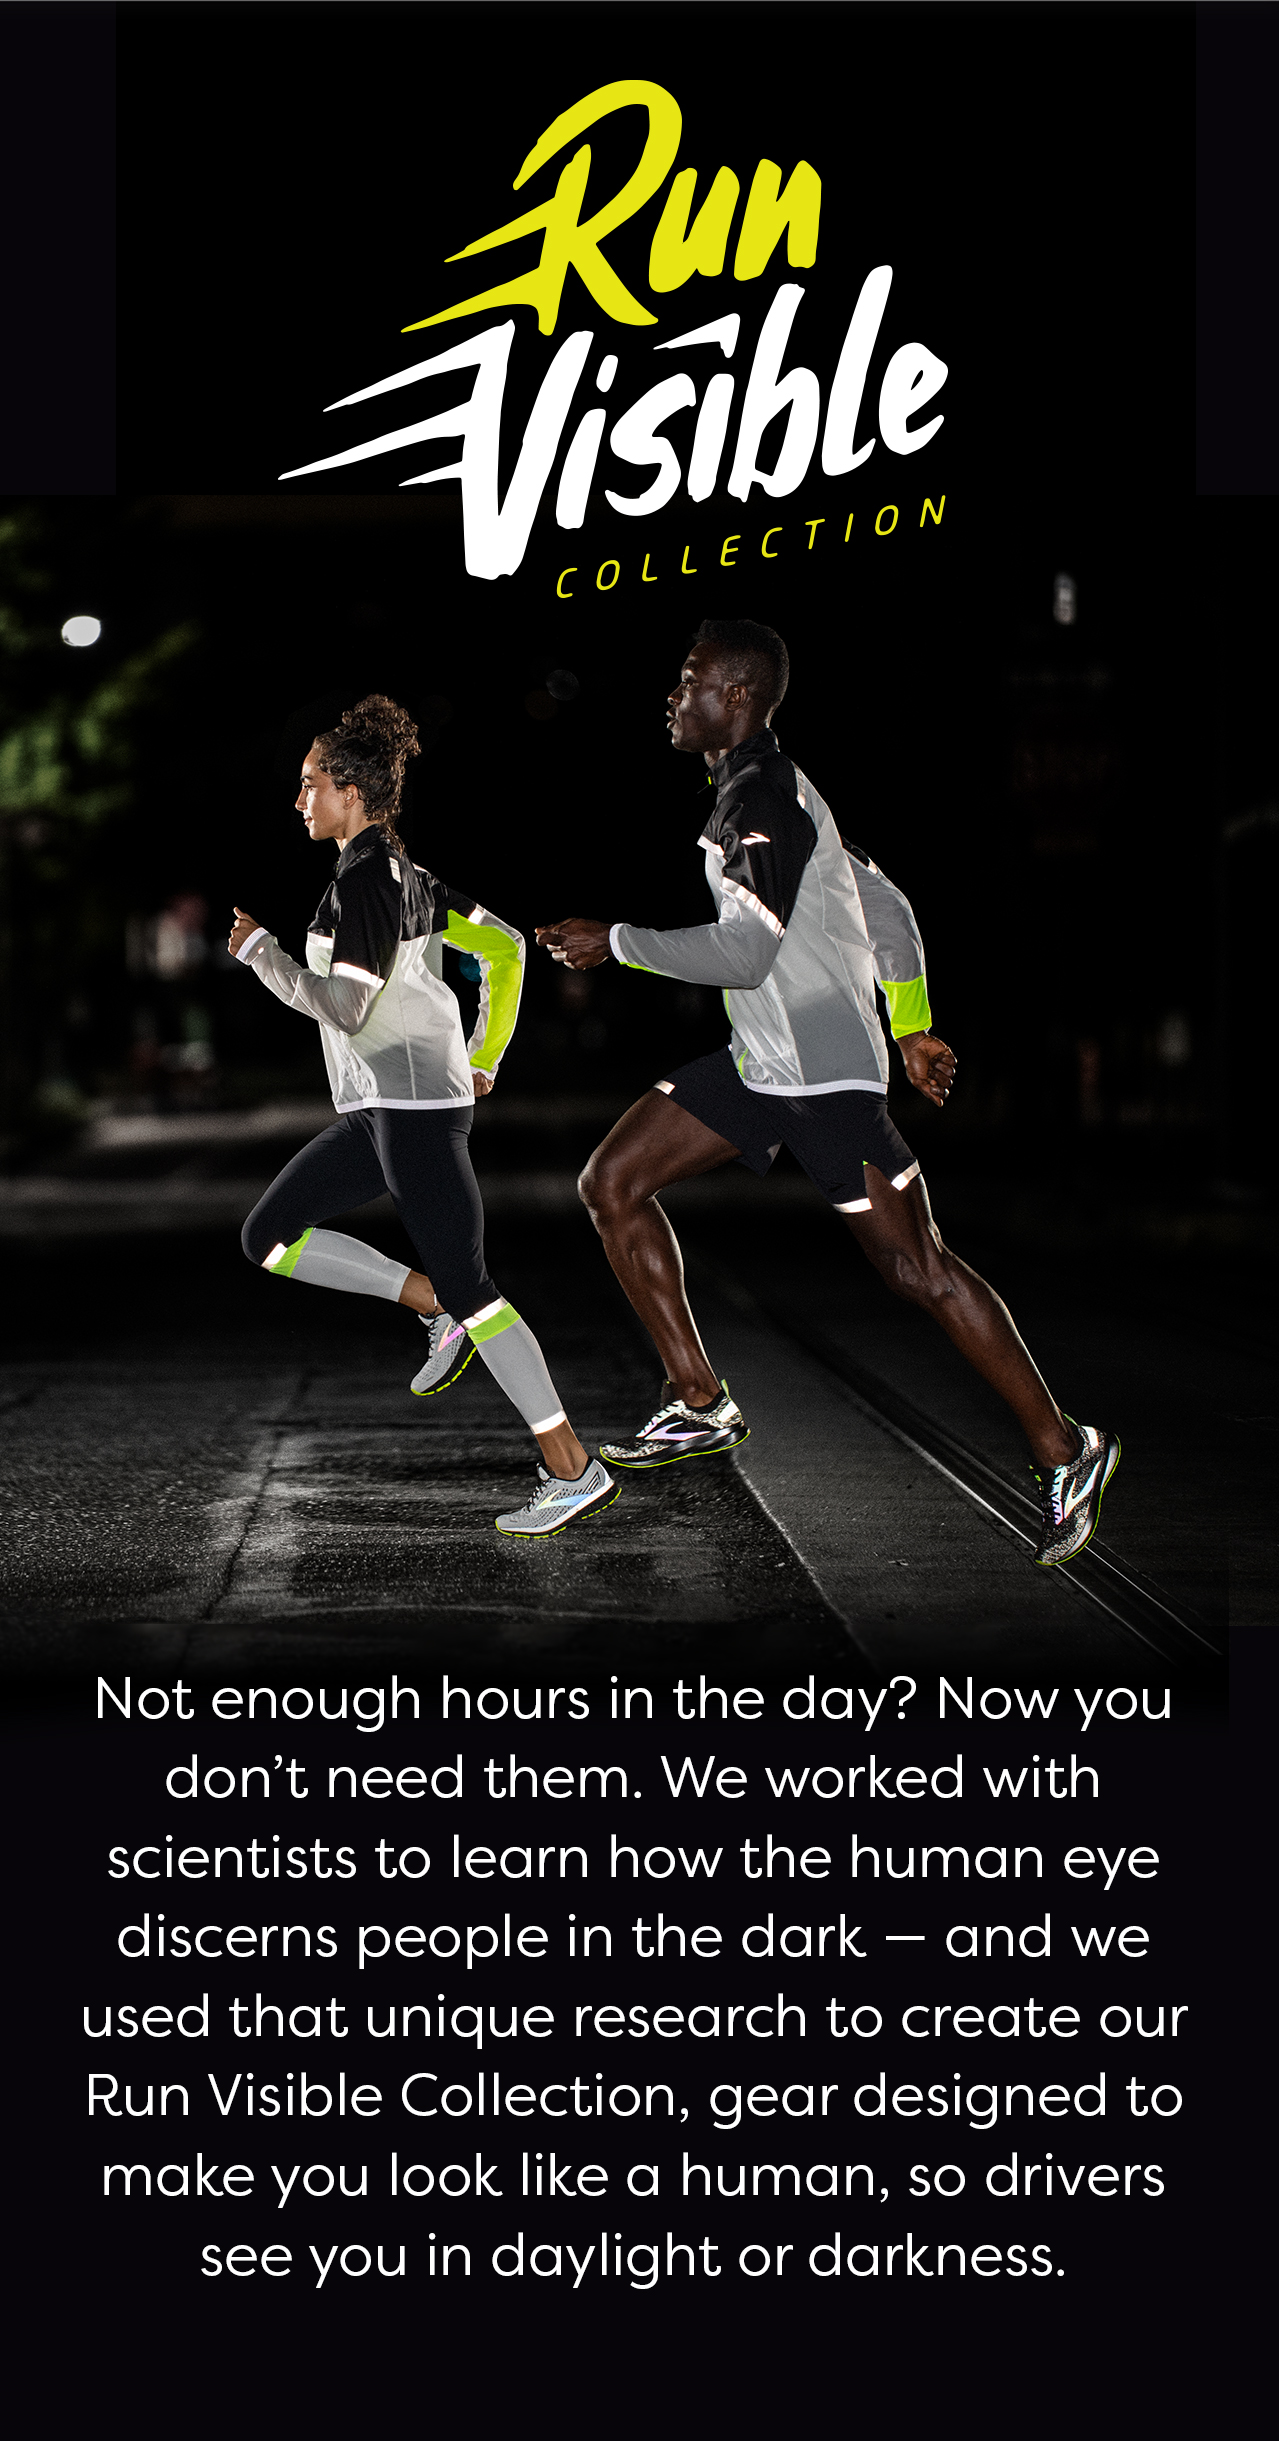 Run Visible Collection. Not enough hours in the day? Now you don''t need them. We worked with scientists to learn how the human eye discerns people in the dark - and we used that unique research to create our Run Visible Collection, gear designed to make you look like a human, so drivers see you in daylight or darkness.